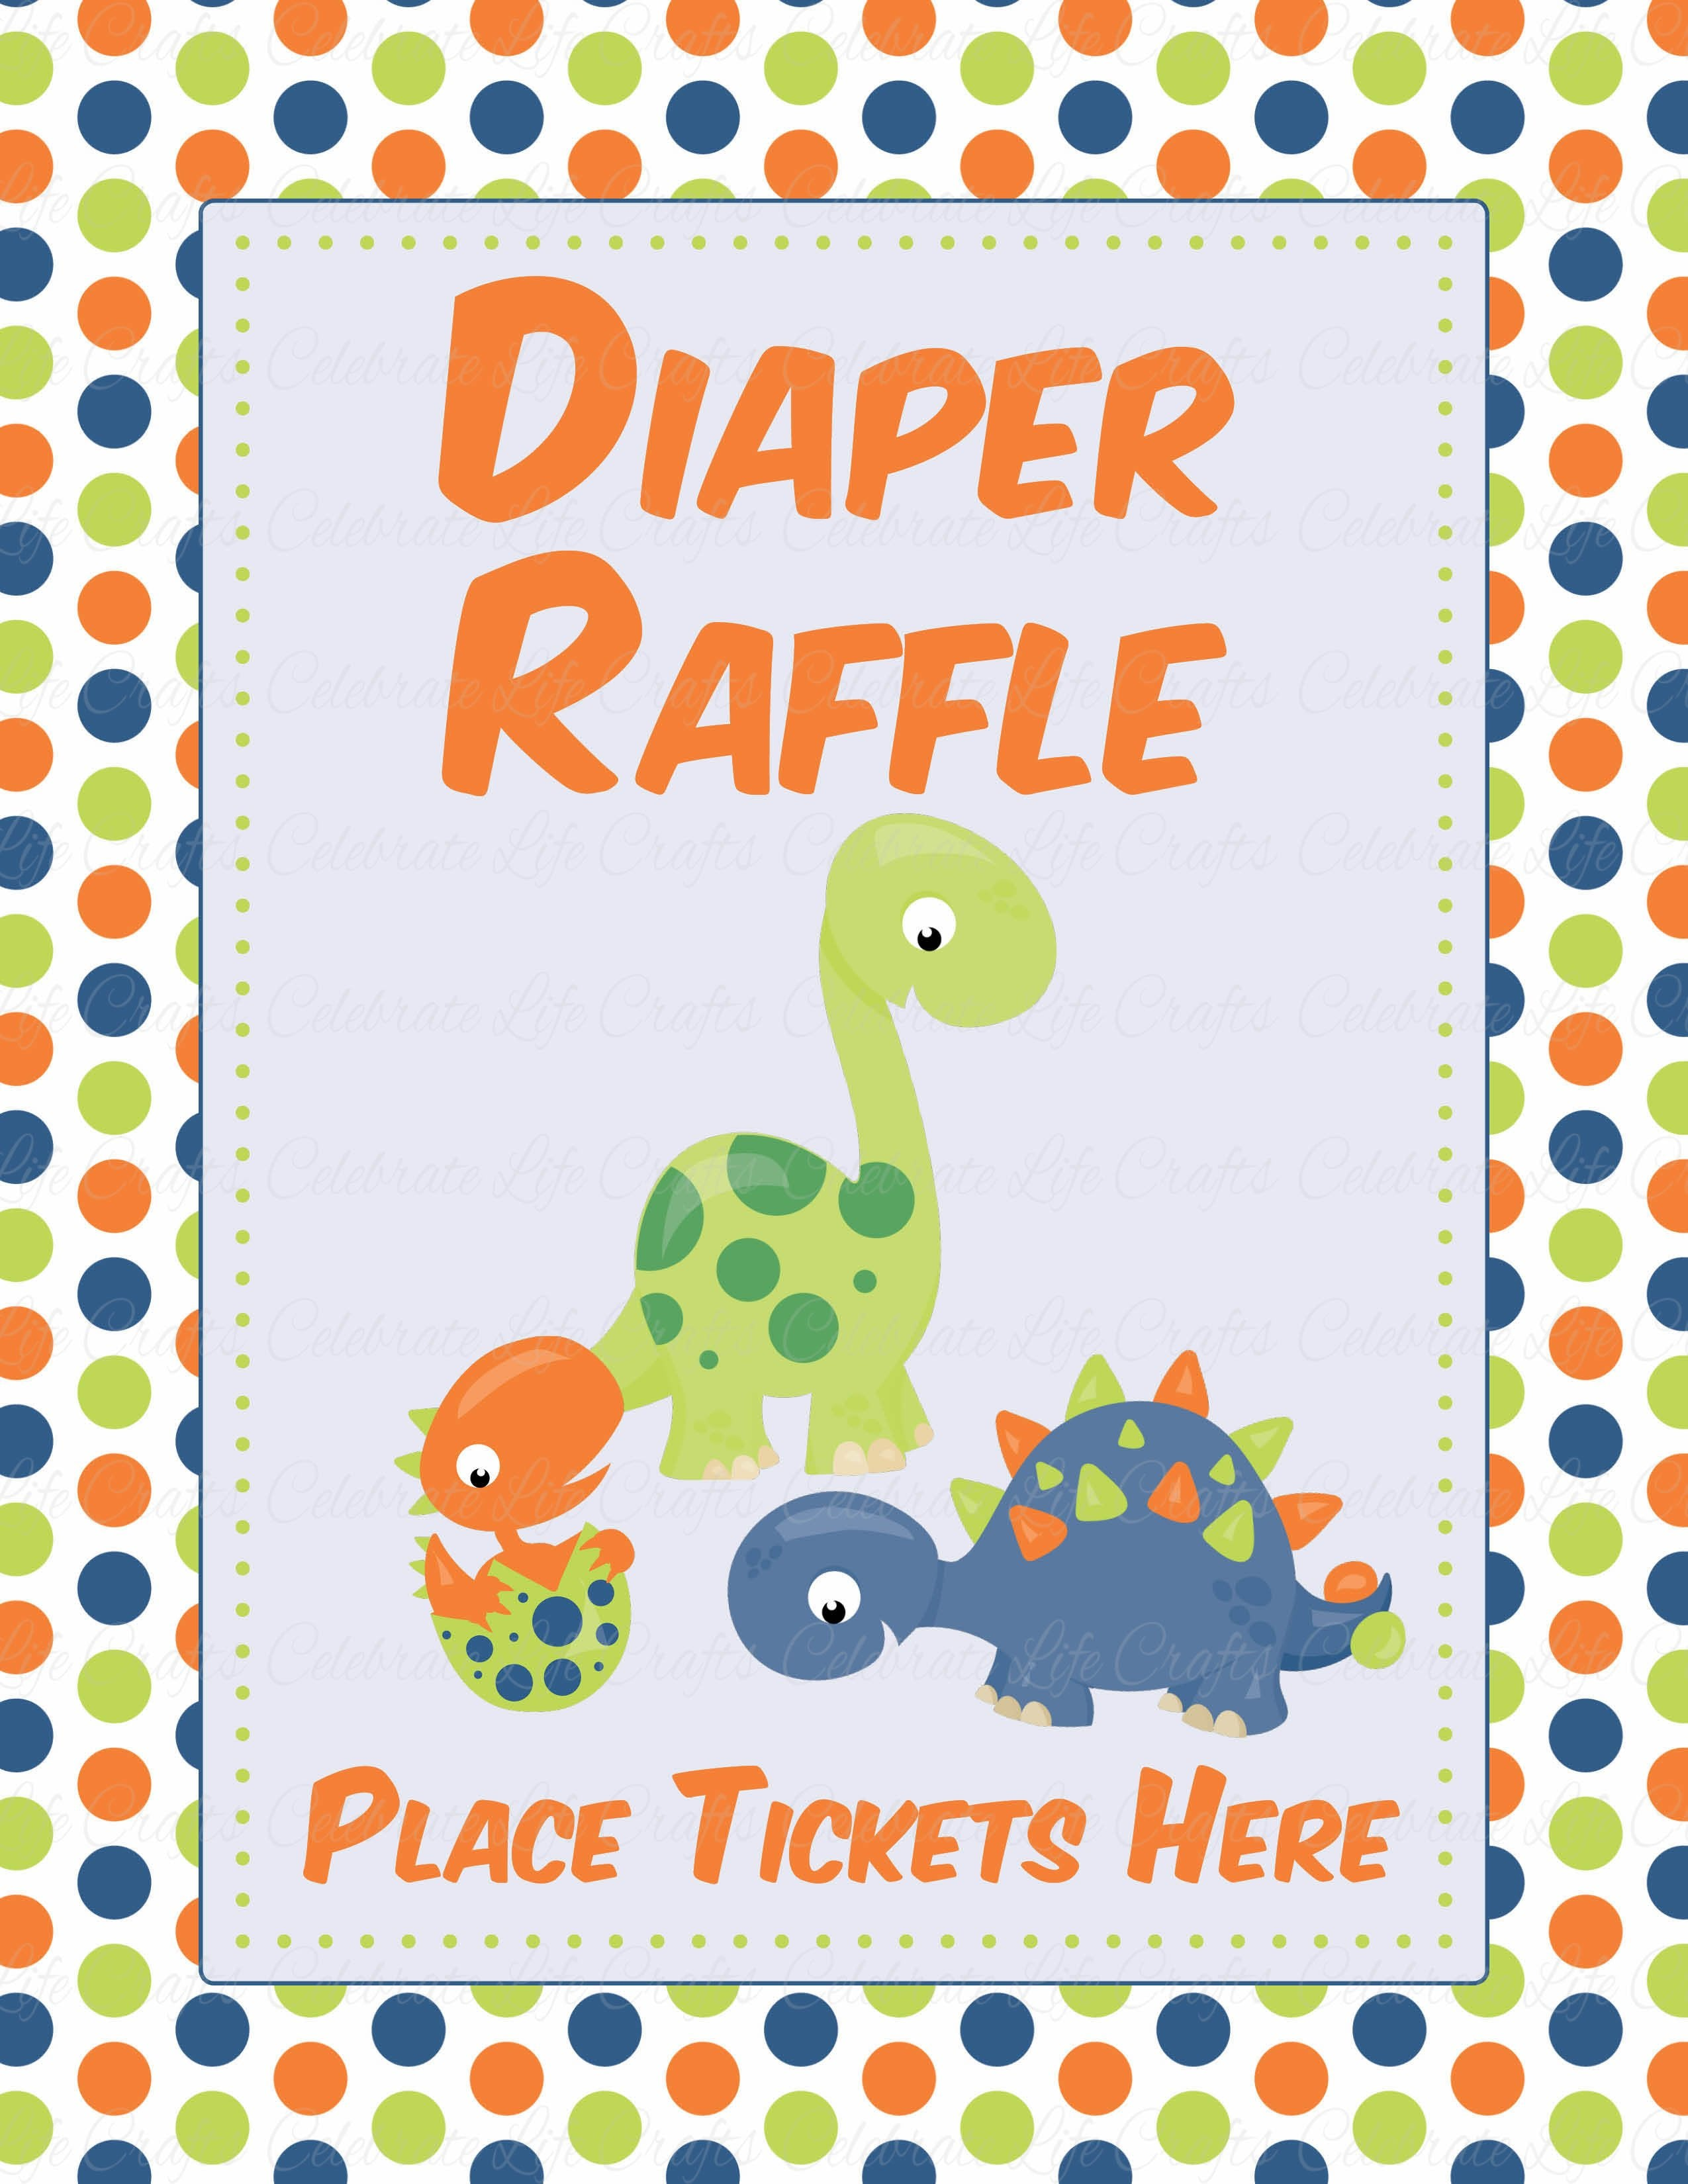 Diaper Raffle Tickets For Baby Shower Dinosaur Baby Shower